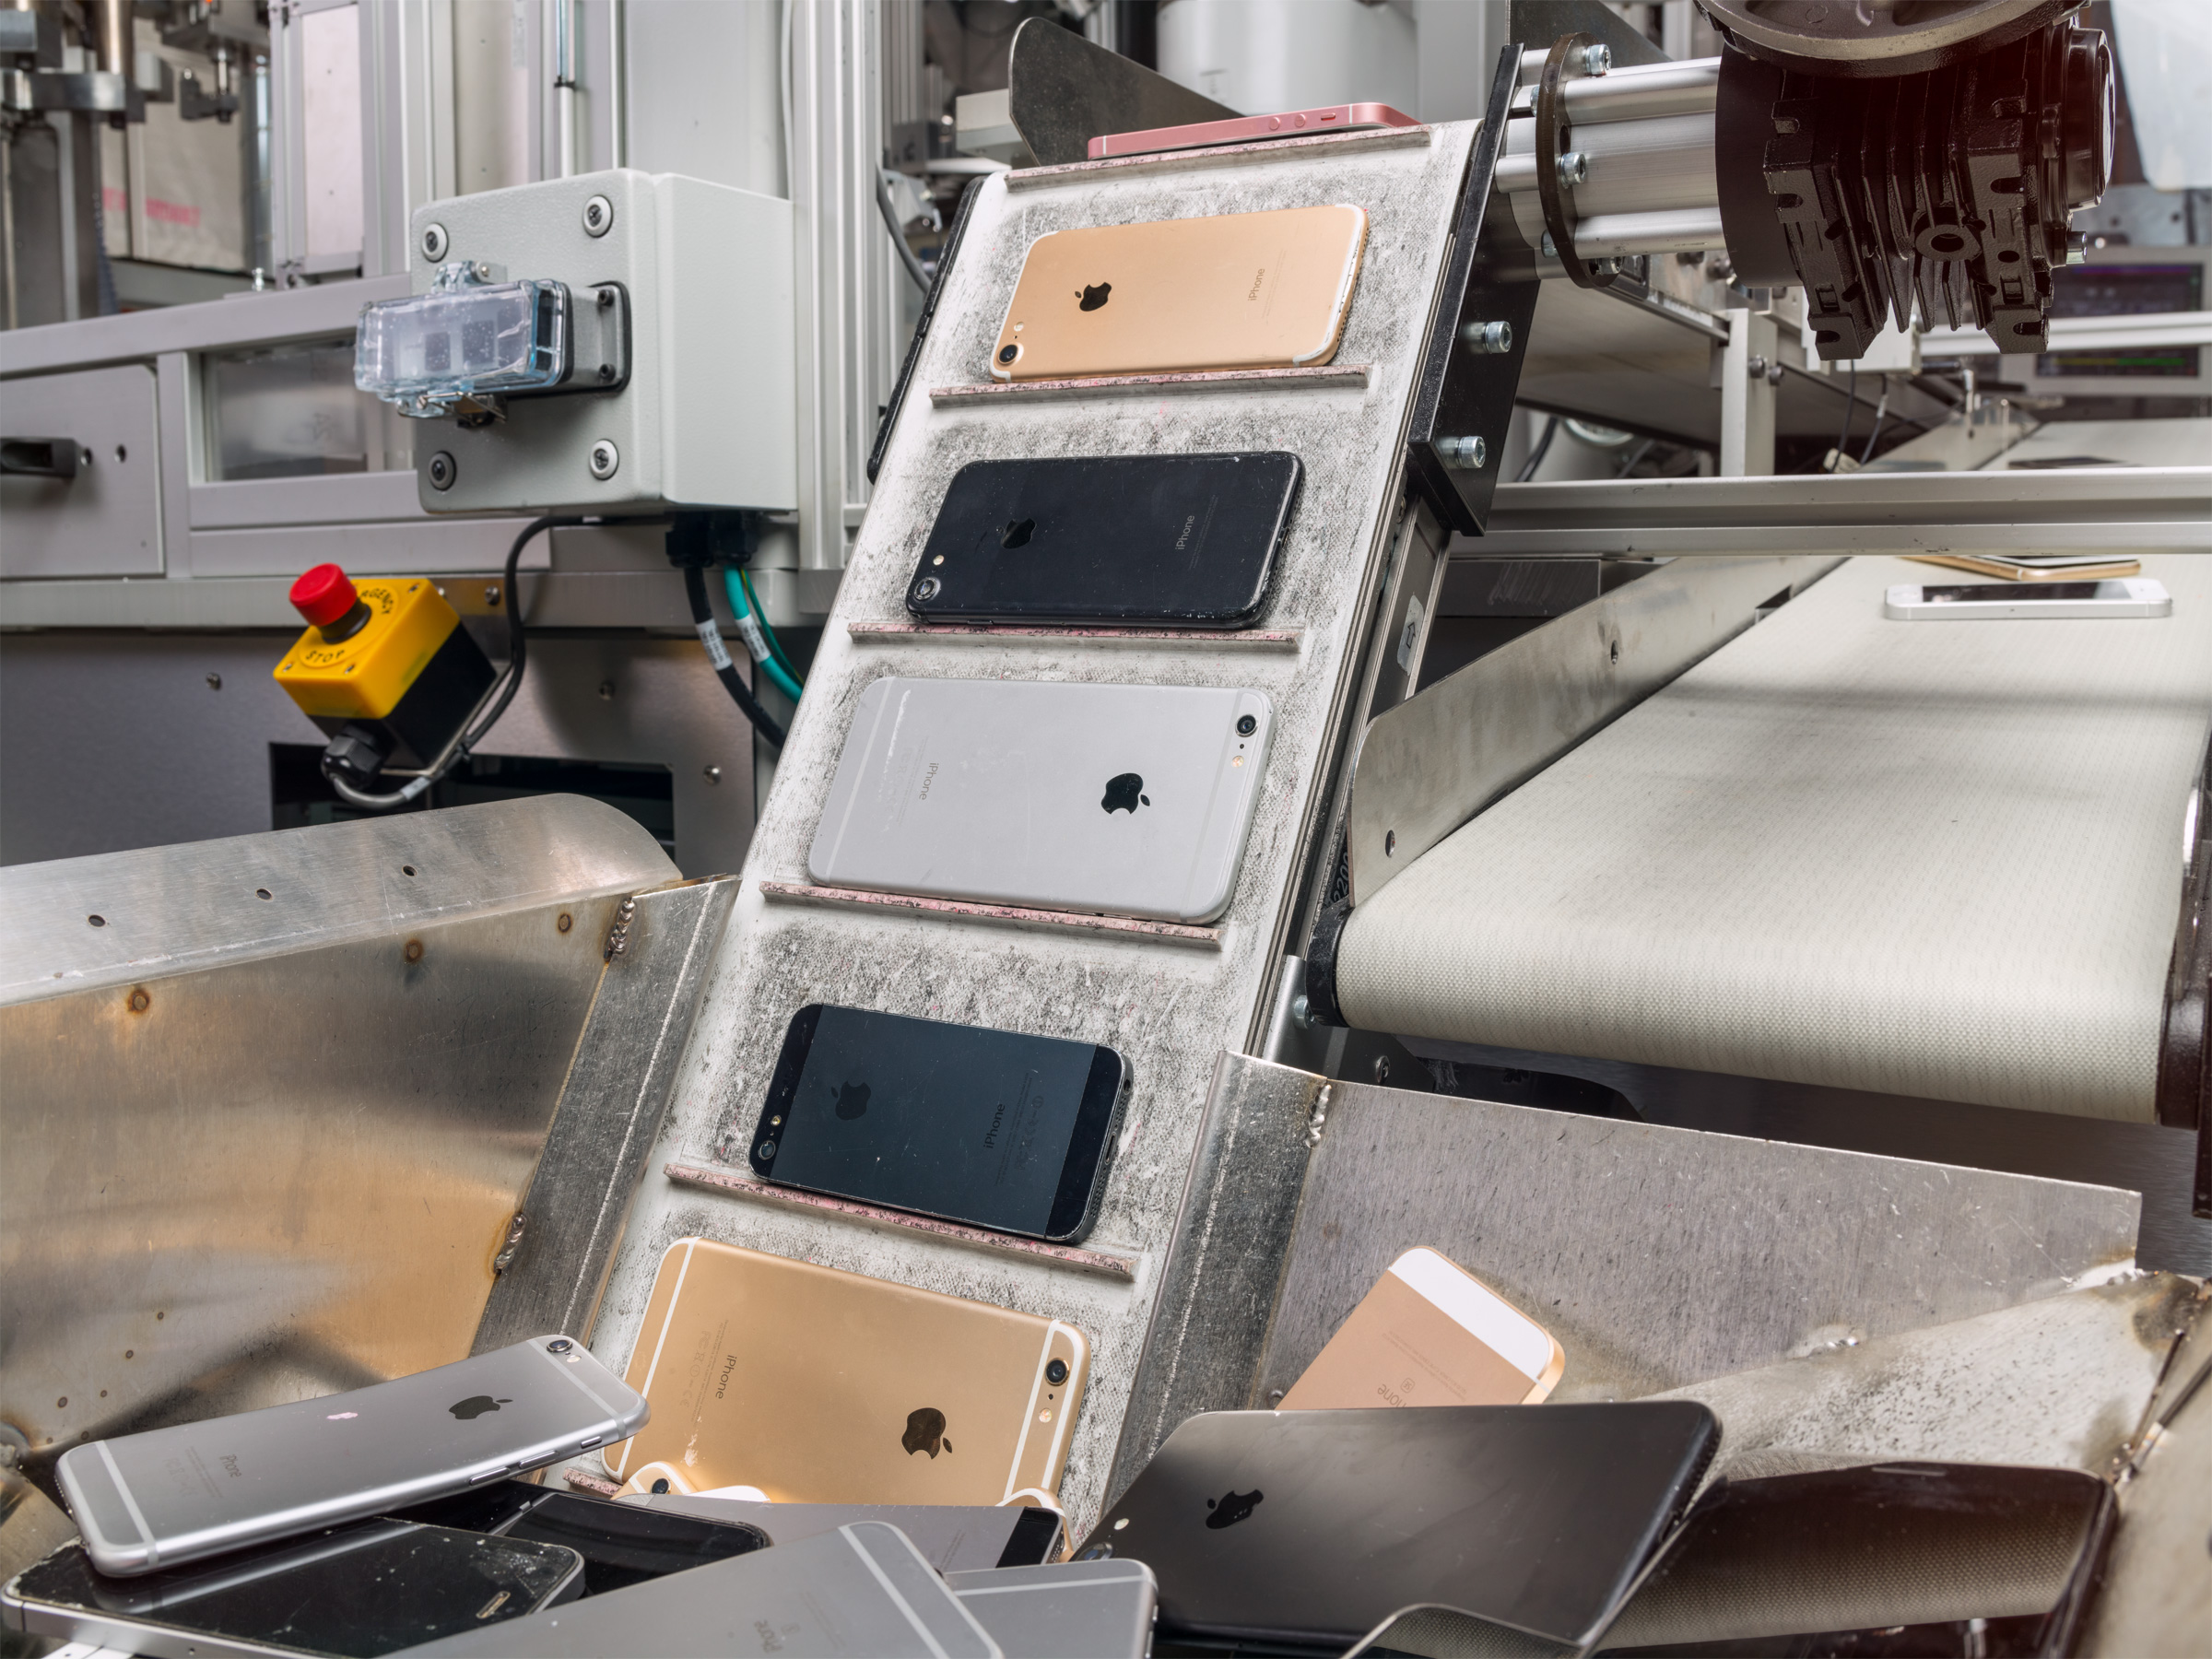 Apple Unveils Daisy, a Robot That Can Disassemble iPhones to Recover Materials